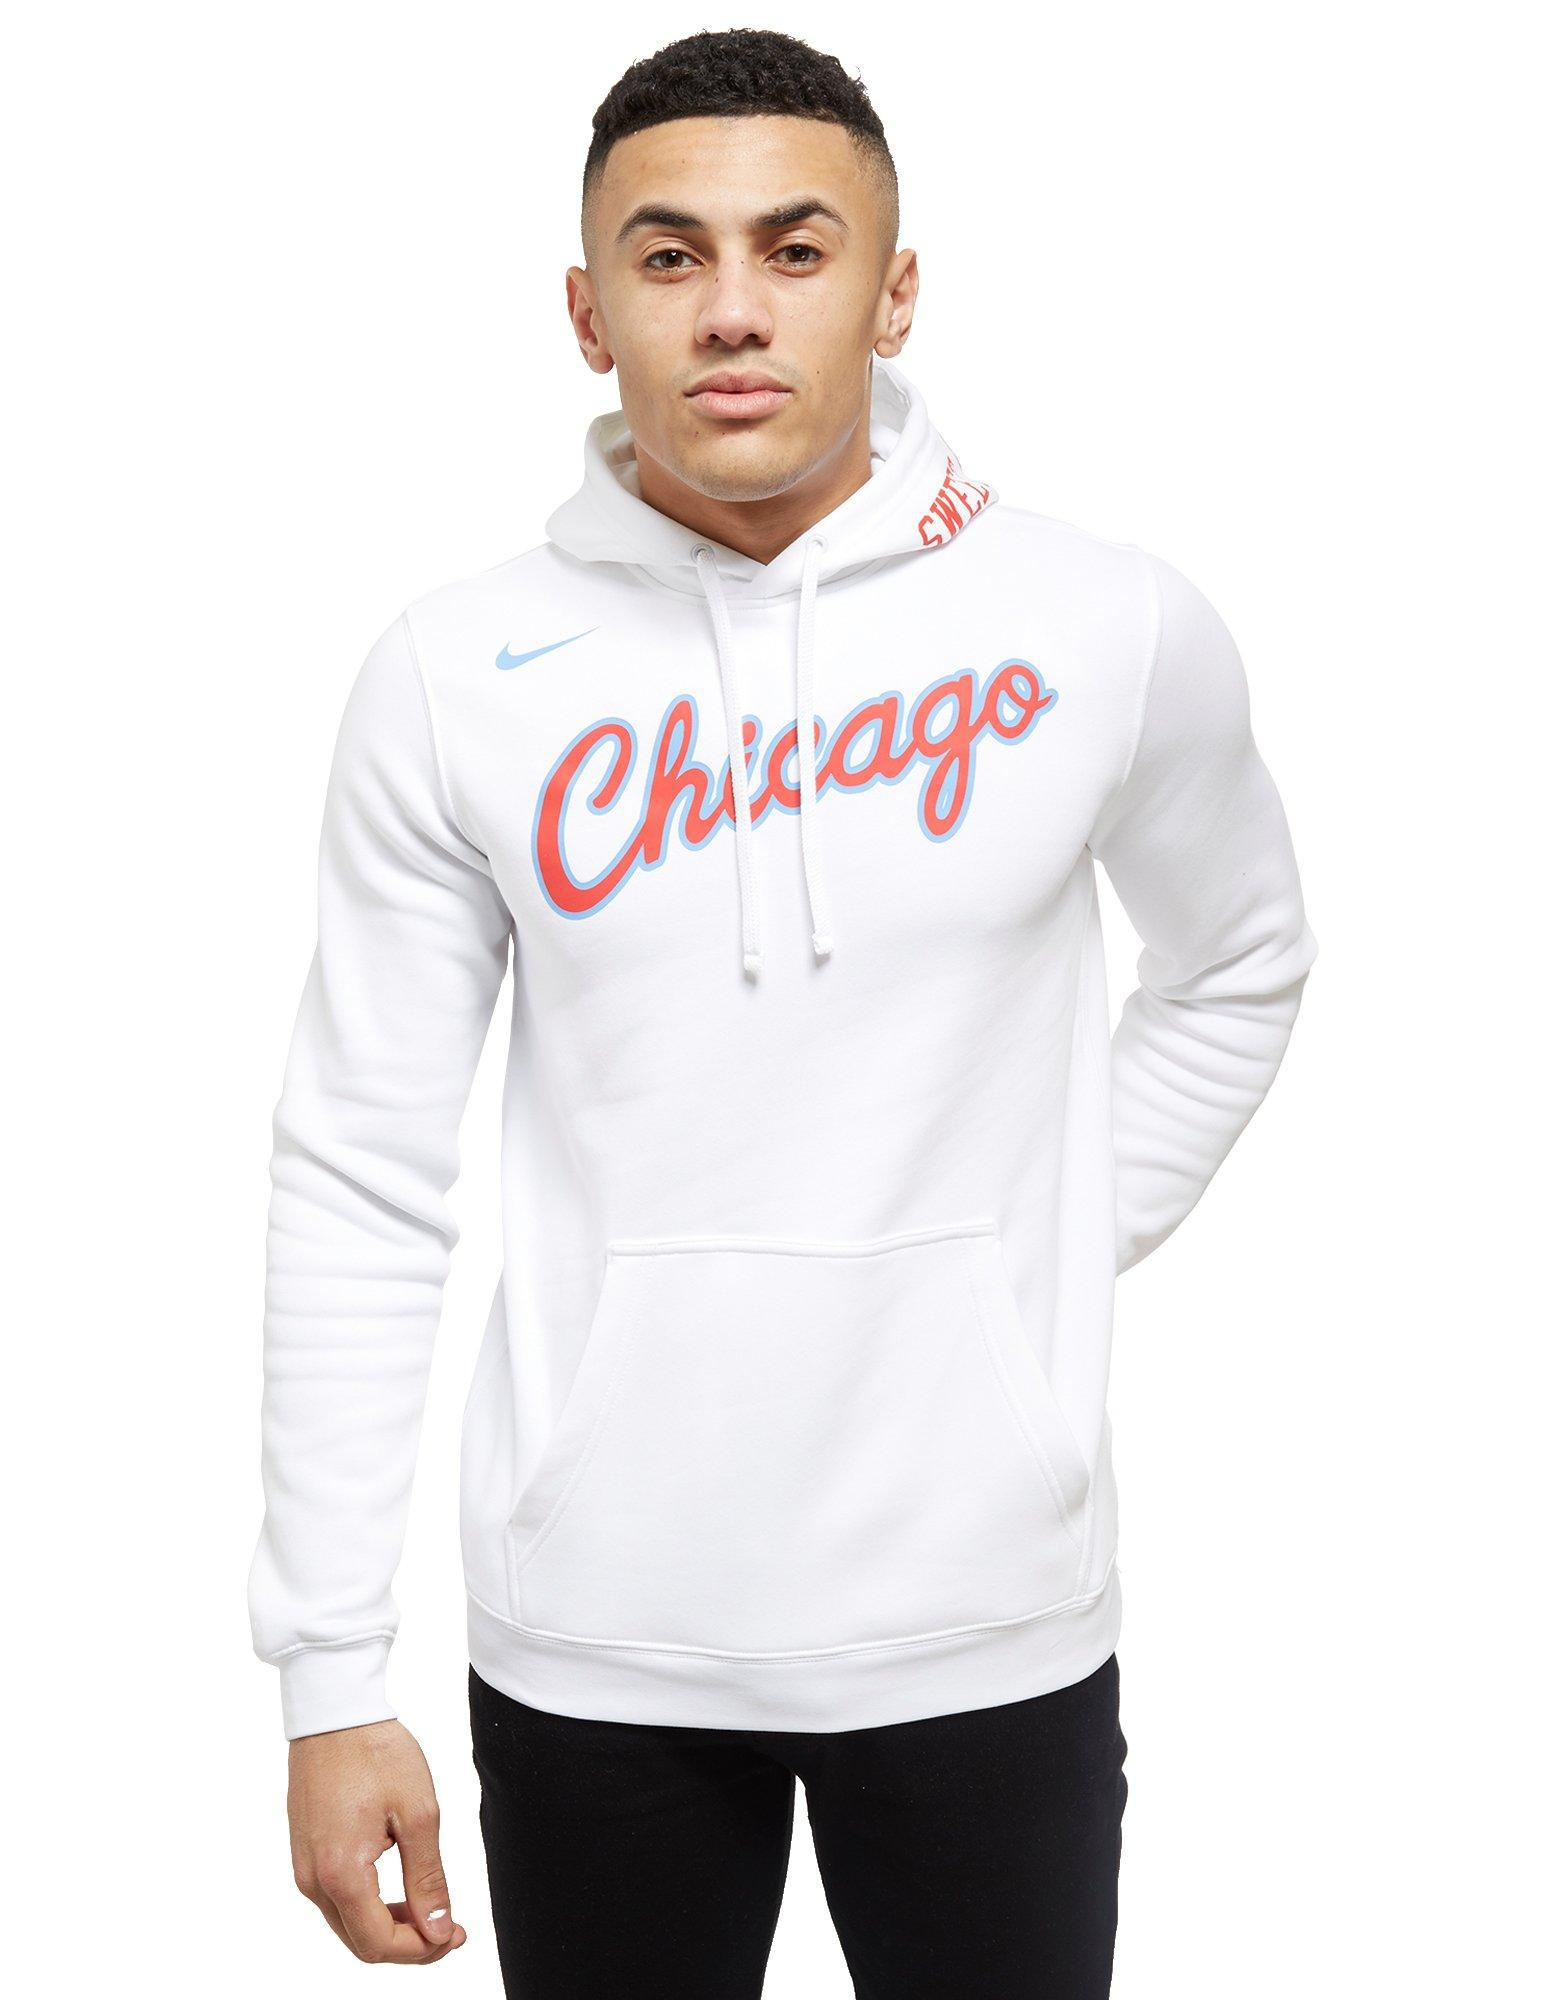 280a02f4 Nike Nba Chicago Bulls City Hoodie in White for Men - Lyst